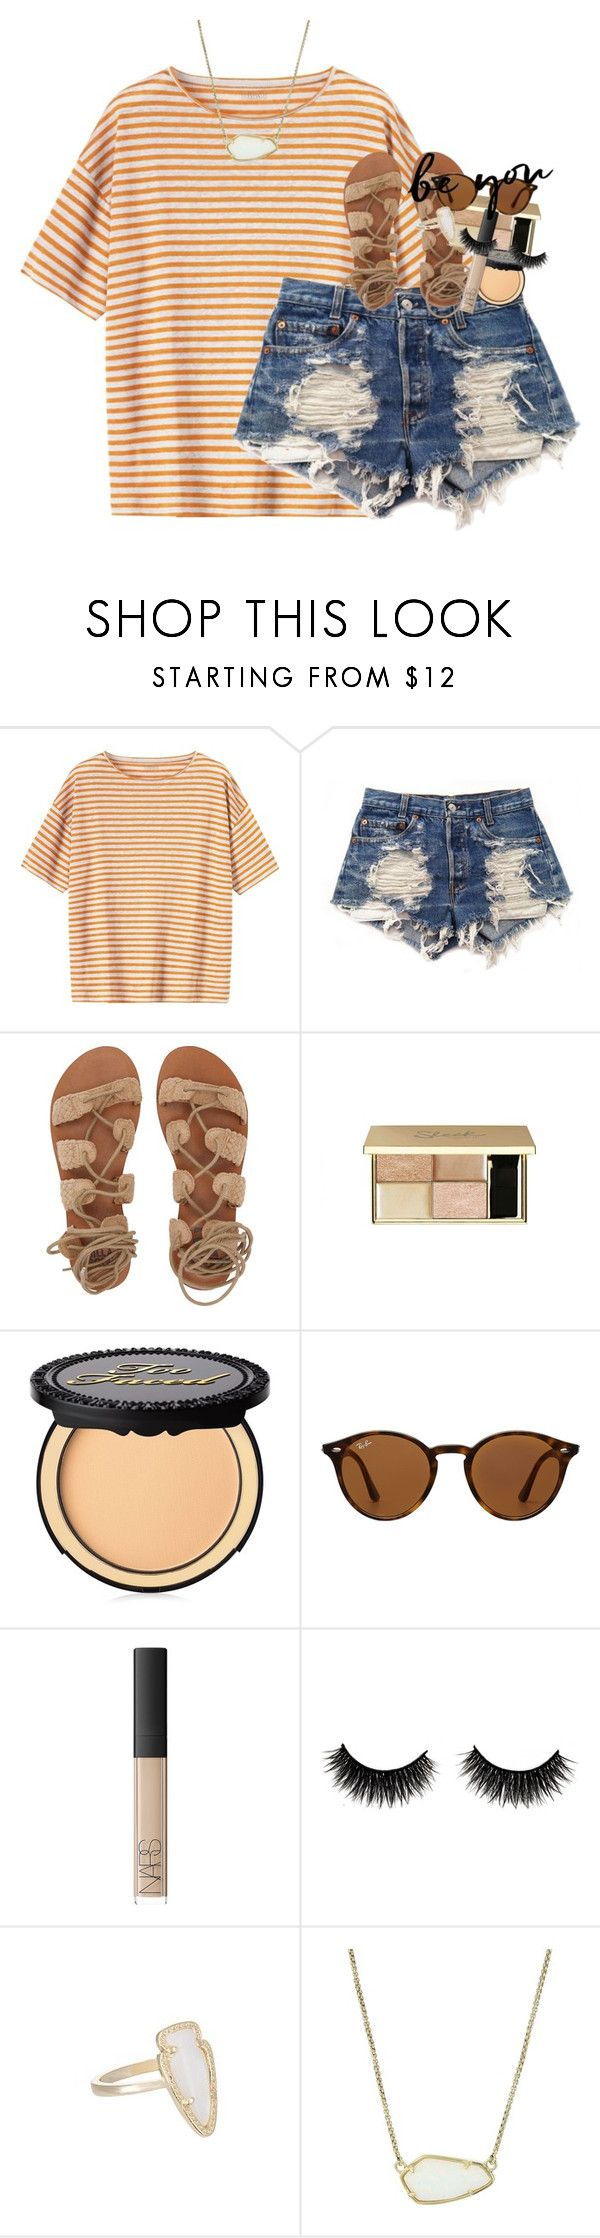 """""""boys seem to like the girls who like to kiss and tell"""" by classynsouthern ❤ liked on Polyvore featuring Toast, Levi's, Billabong, Too Faced Cosmetics, Ray-Ban, NARS Cosmetics and Kendra Scott"""